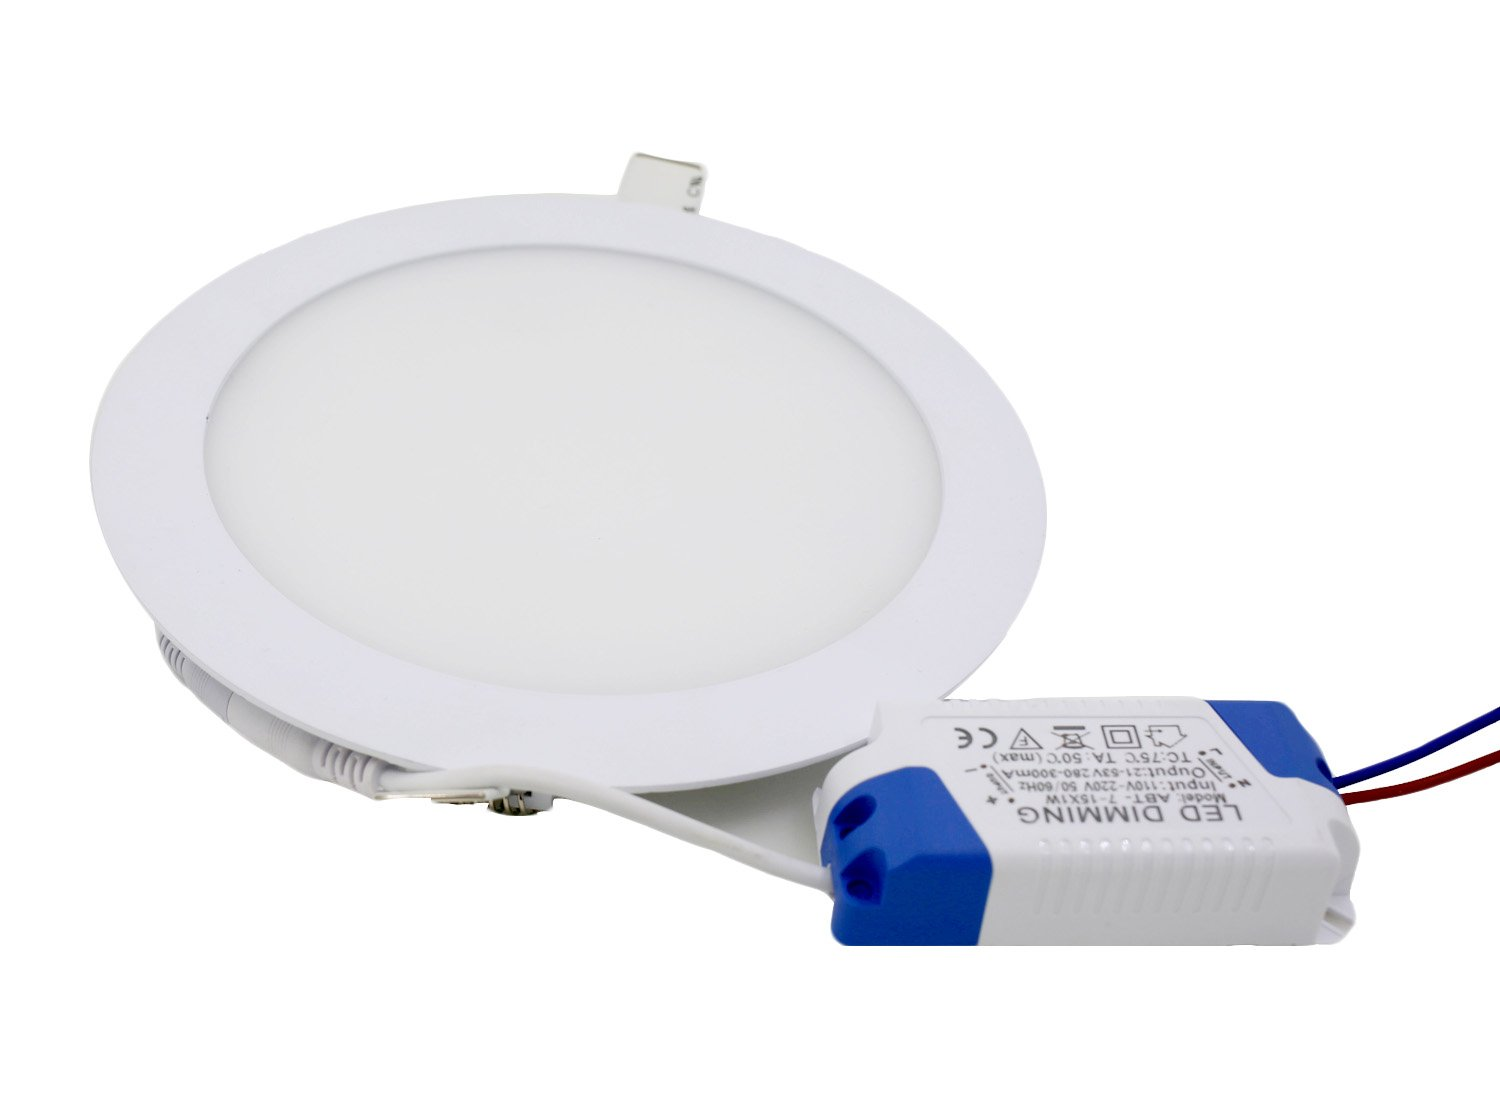 72mm Cutout Aurora GU10 IP65 Compact Universal Fixed Insulation Coverable Fire Rated LED Downlights Matt White